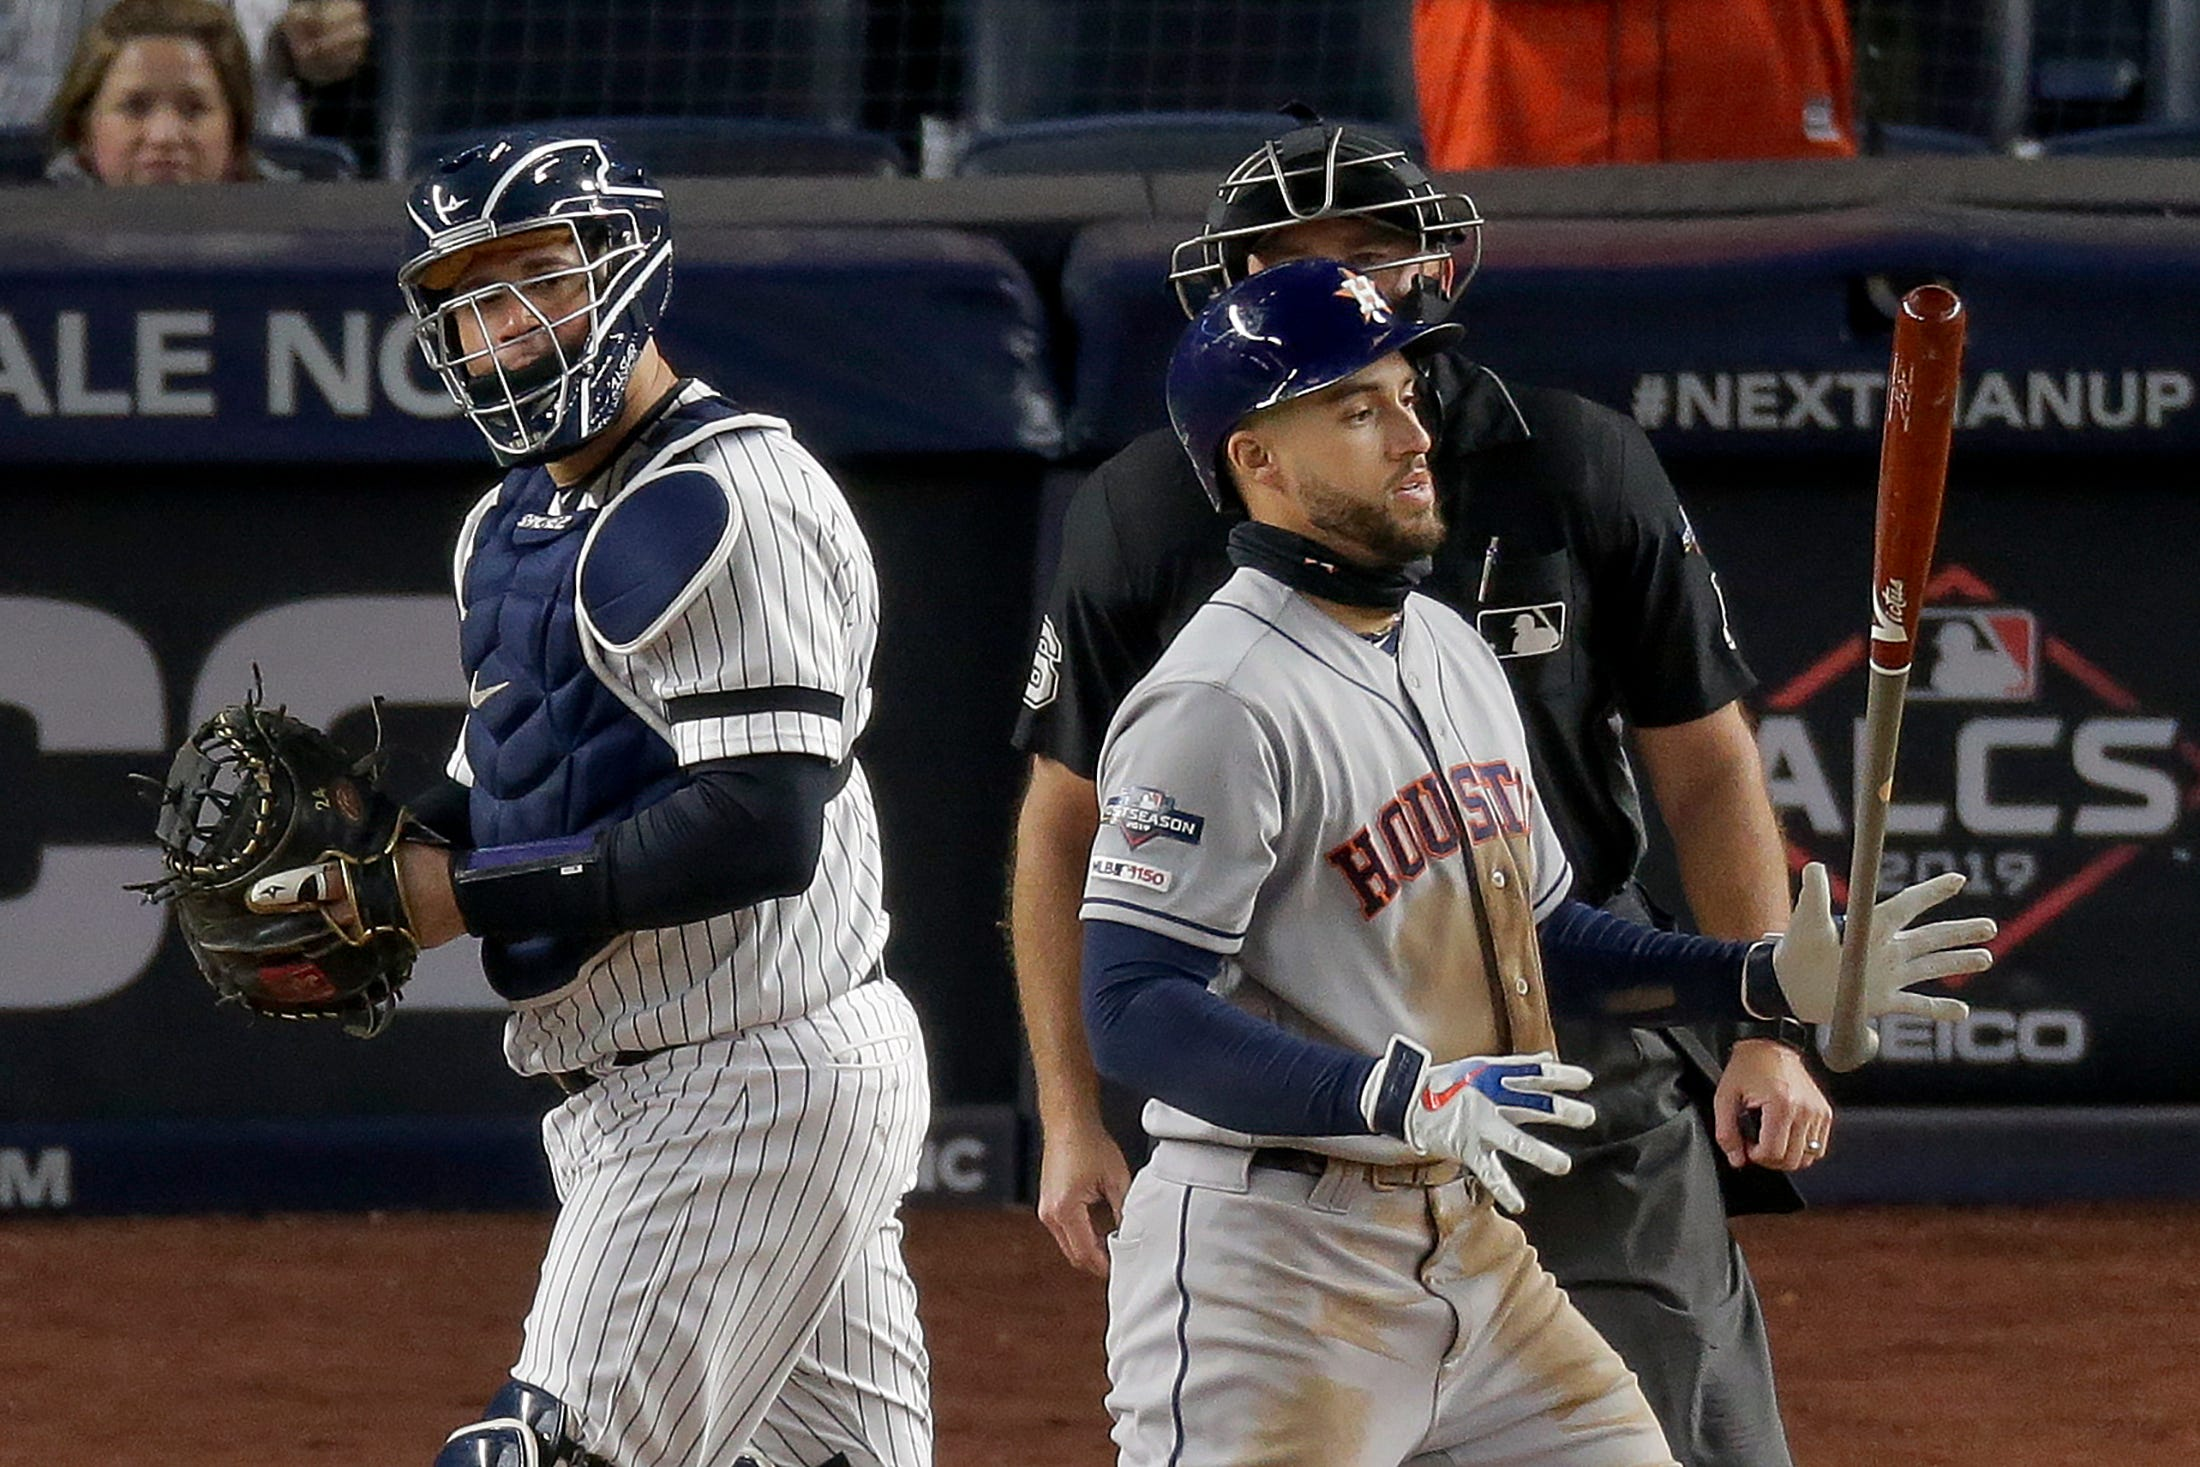 Houston Astros lineup vs. New York Yankees announced for ALCS Game 5